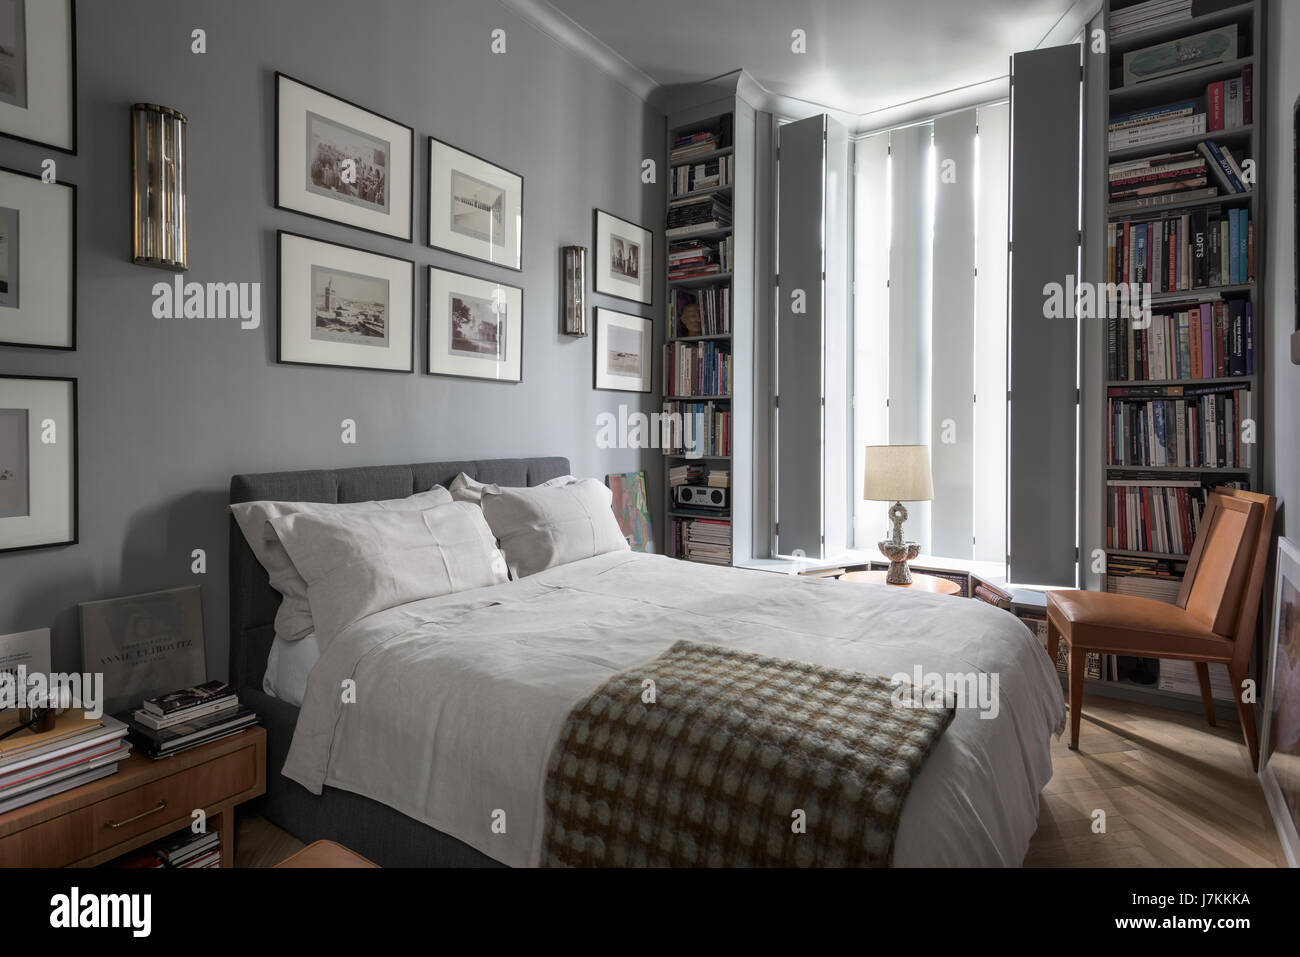 Calm grey tones and book shelving in bedroom with 1940s Murano glass wall lights - Stock Image